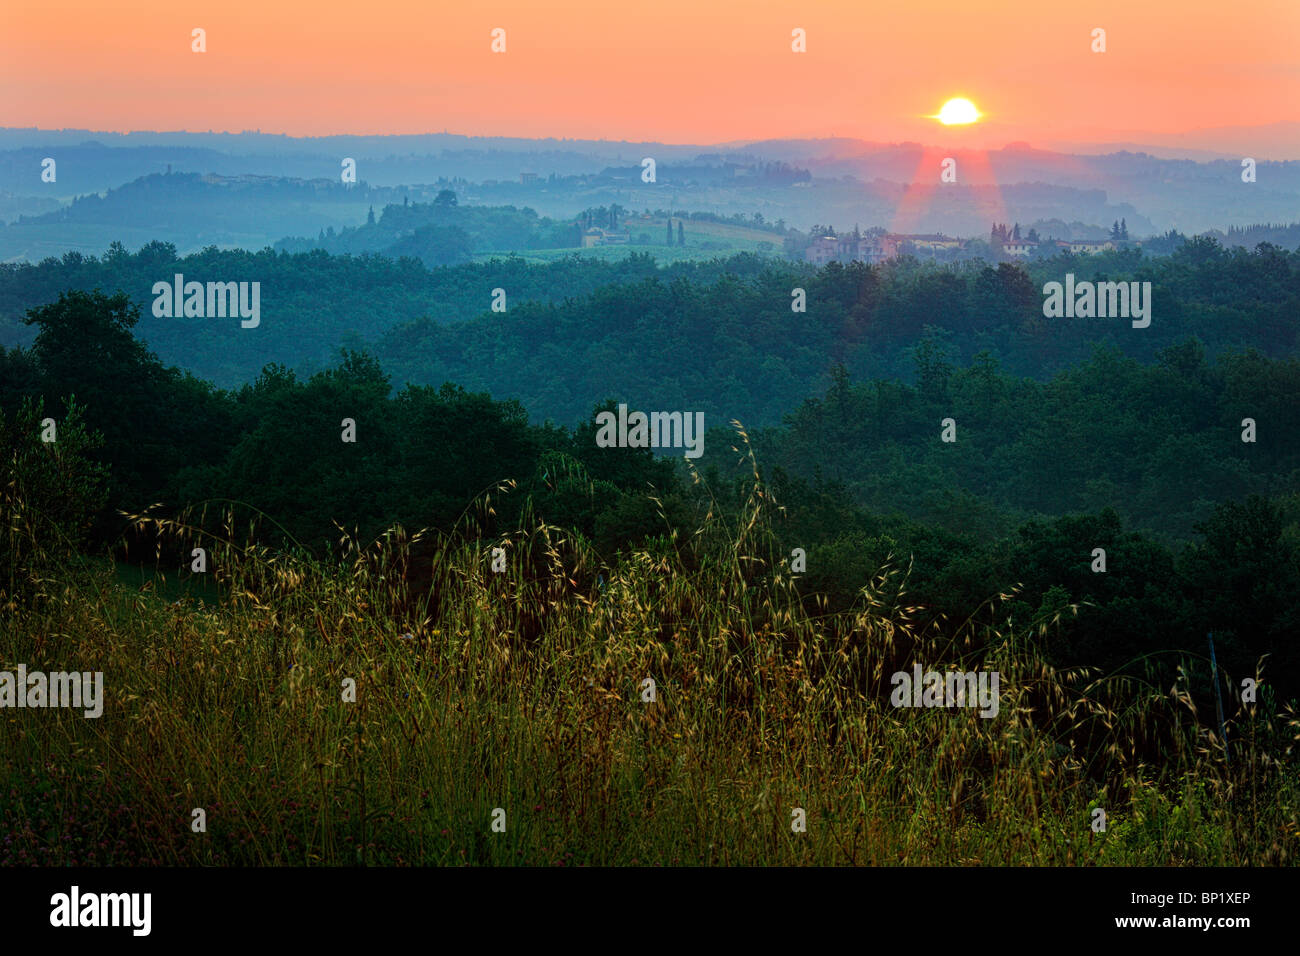 The hilly landscape surrounding the town of San Gimignano in Tuscany, Italy - Stock Image